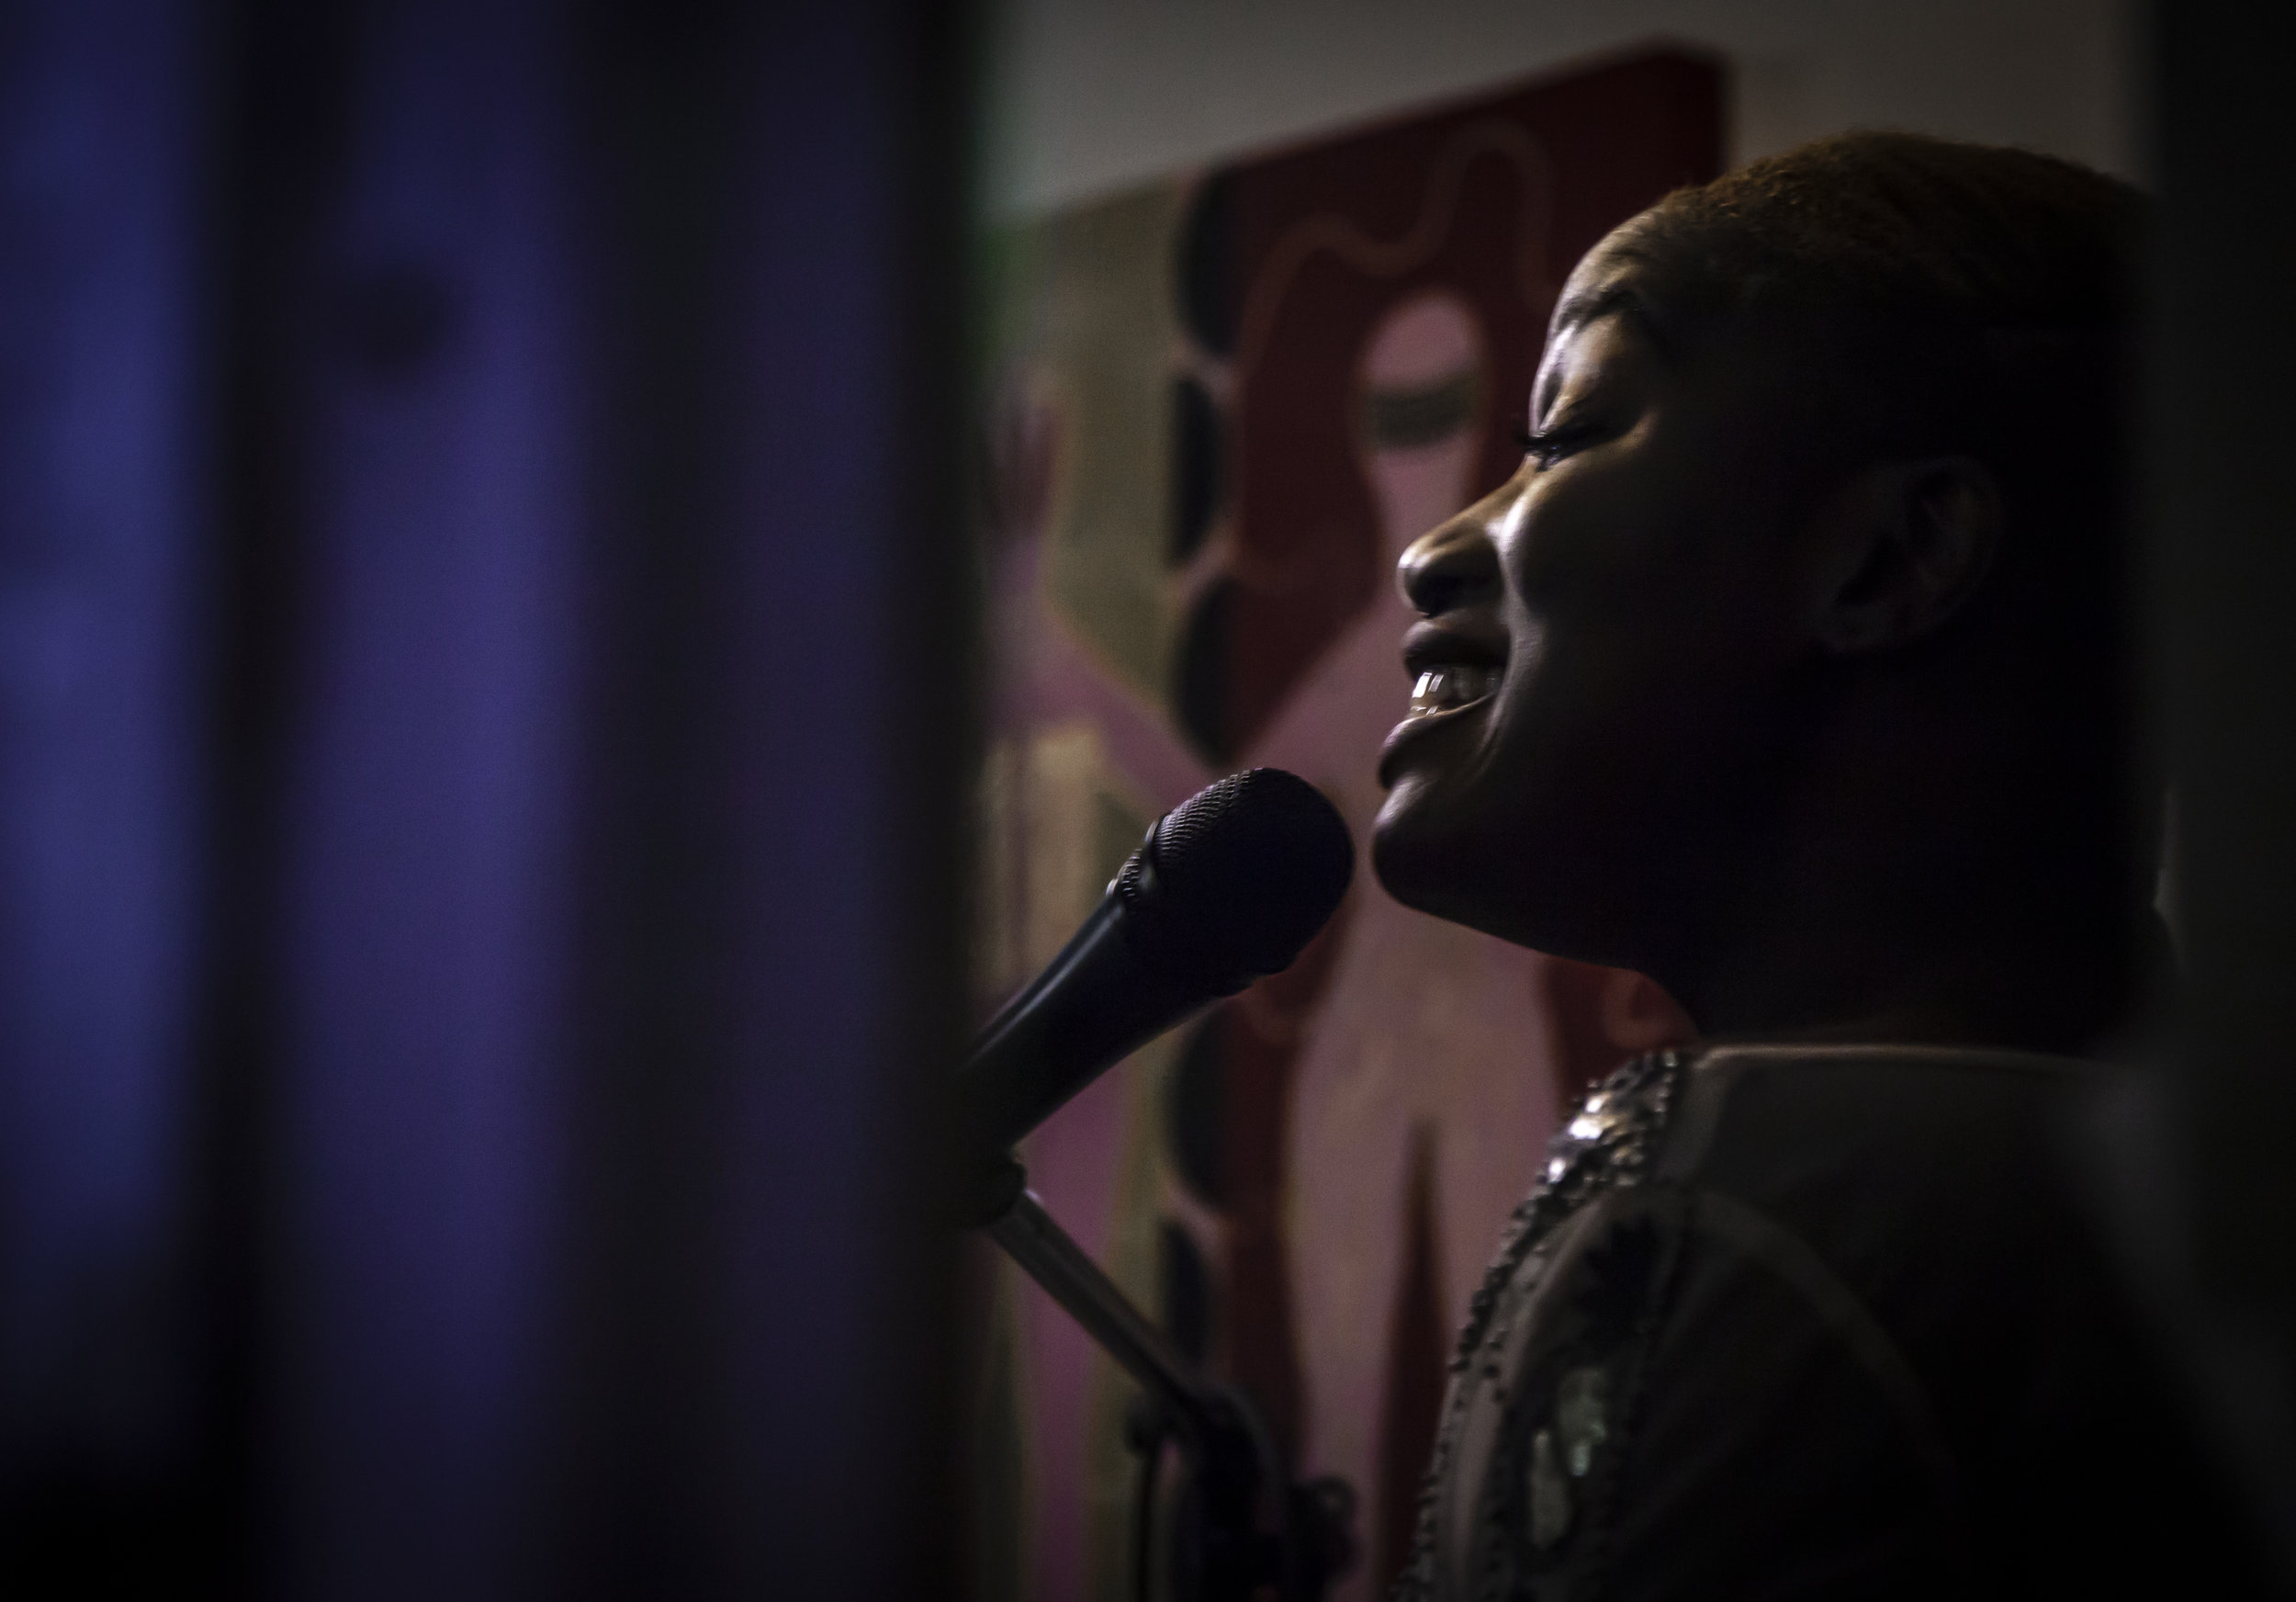 Toluwanimi Obiwole at Stain'd Arts Open Mic Photographer, Hannah Skewes